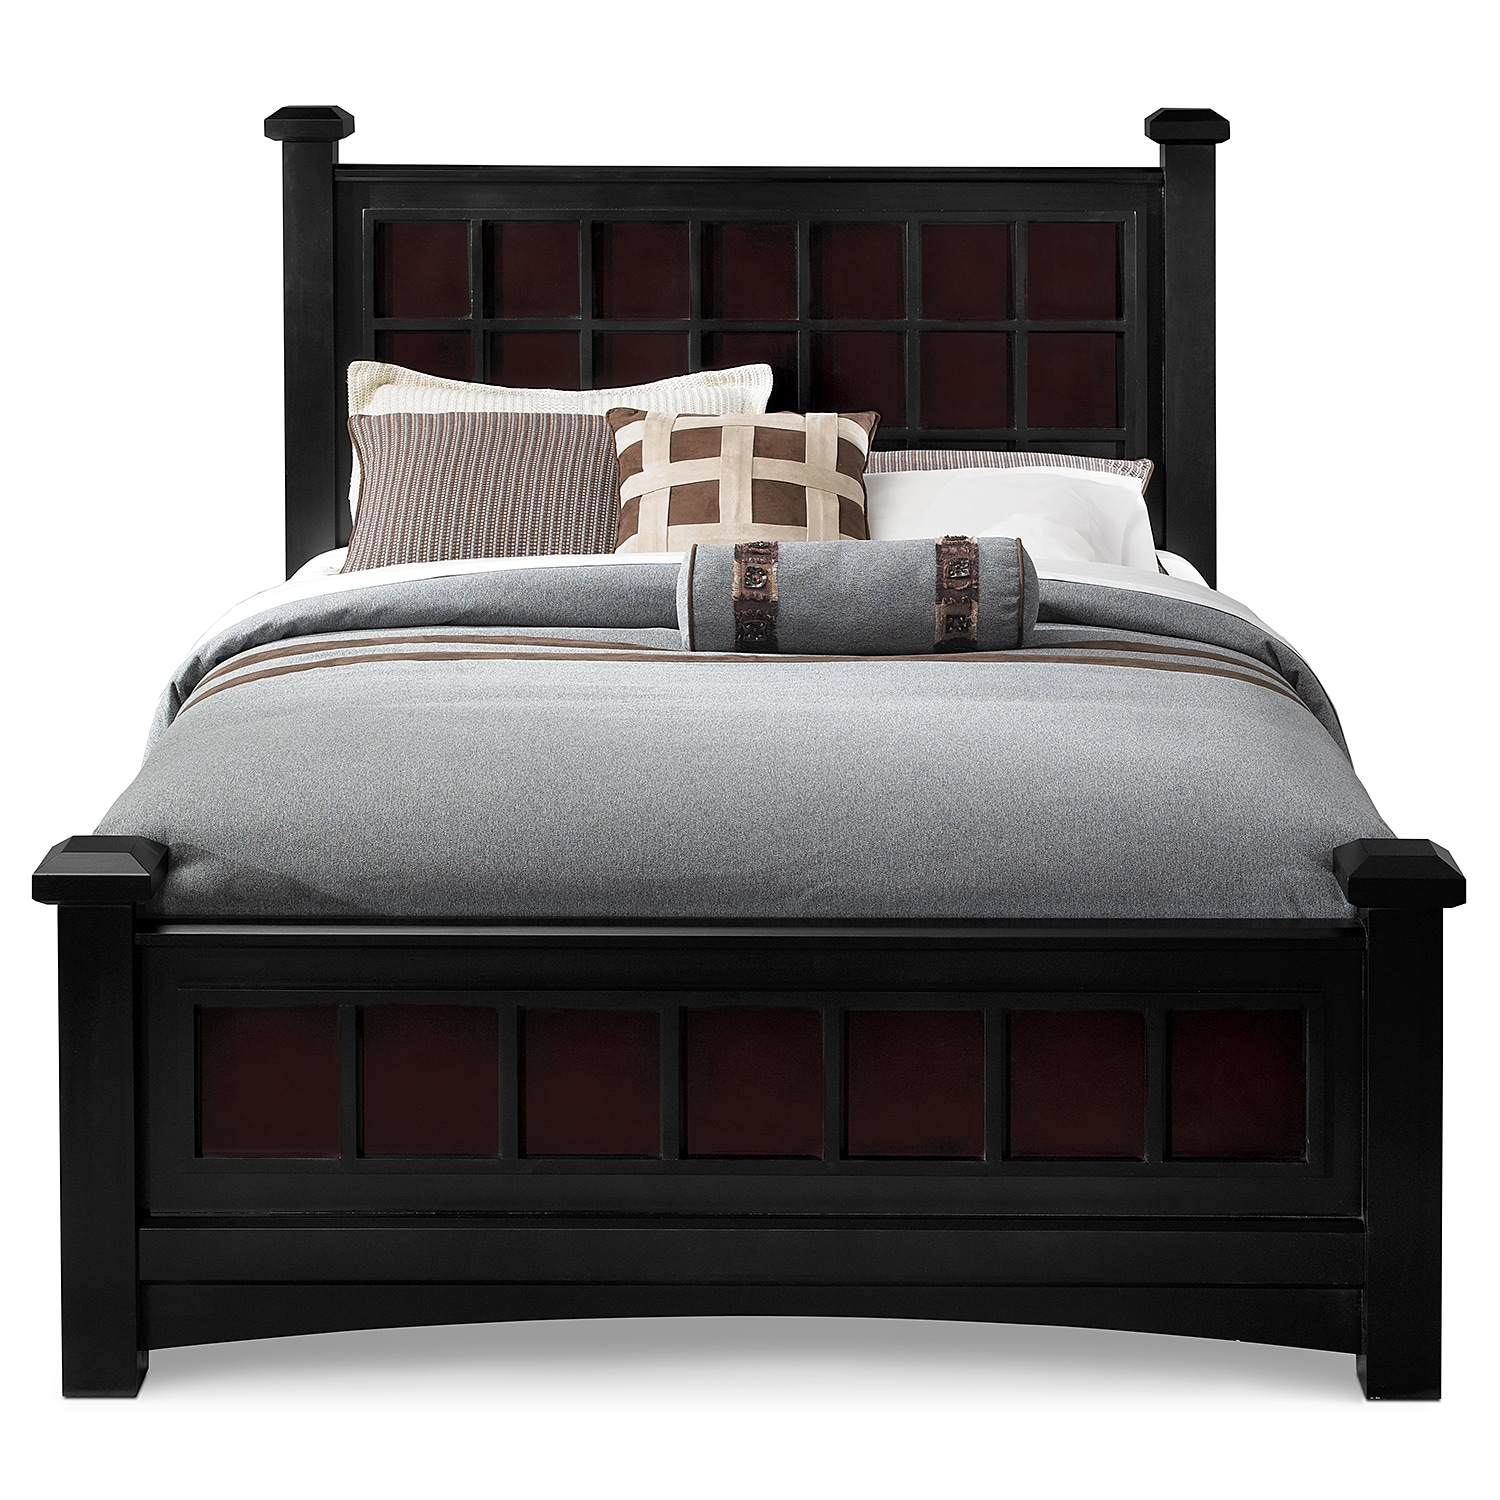 Furnishings for every room online and store furniture for Bedroom furniture beds